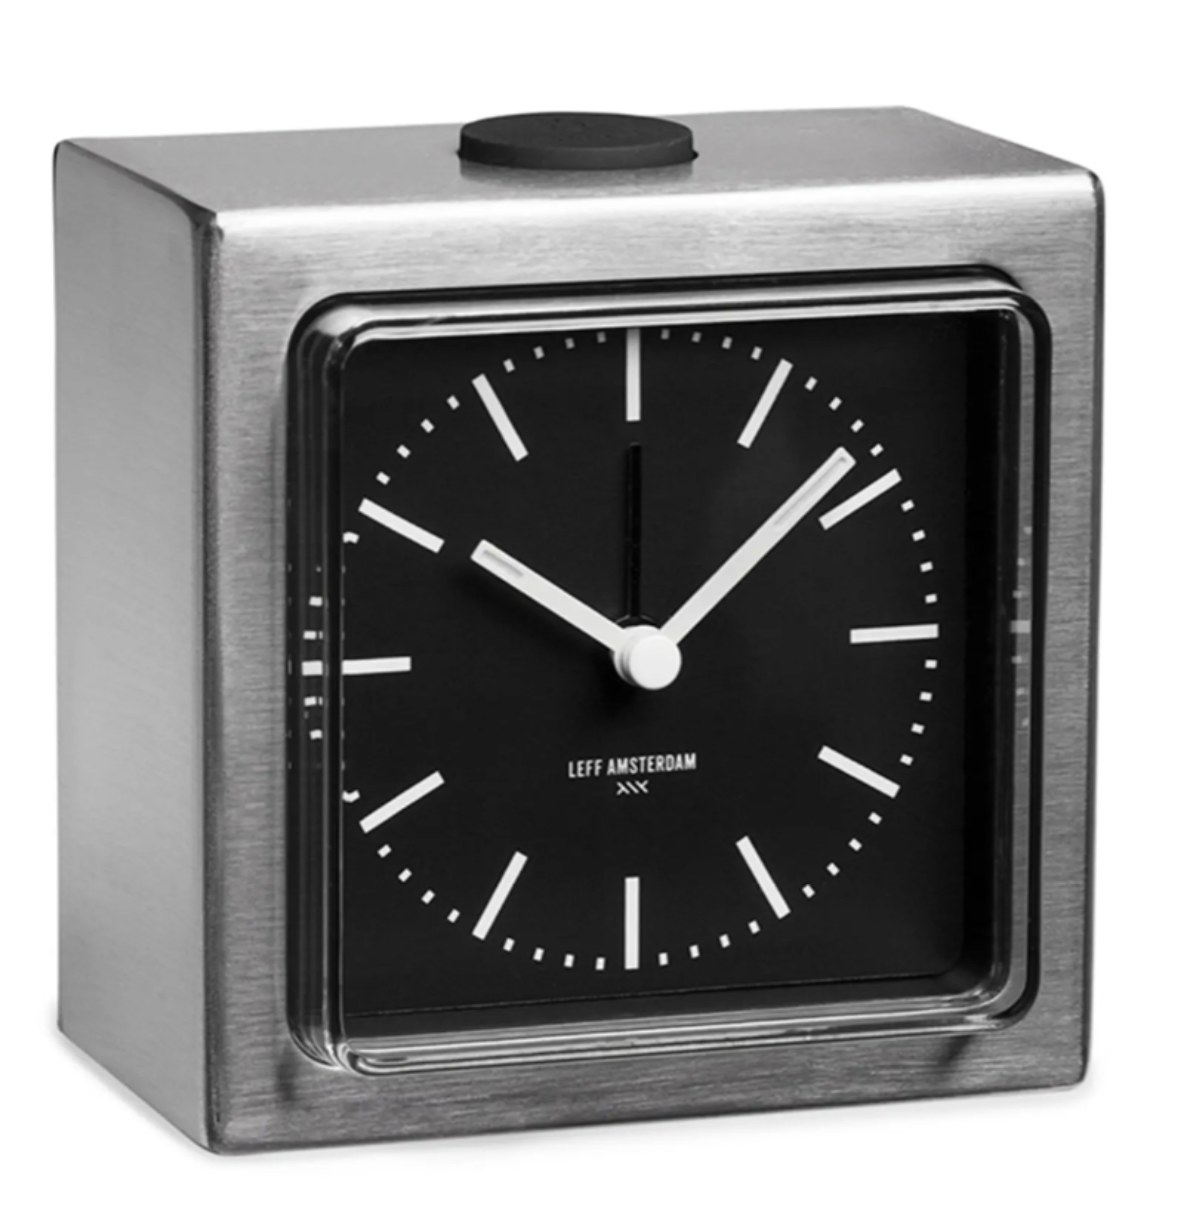 a silver block alarm clock with white arms and a black clock face